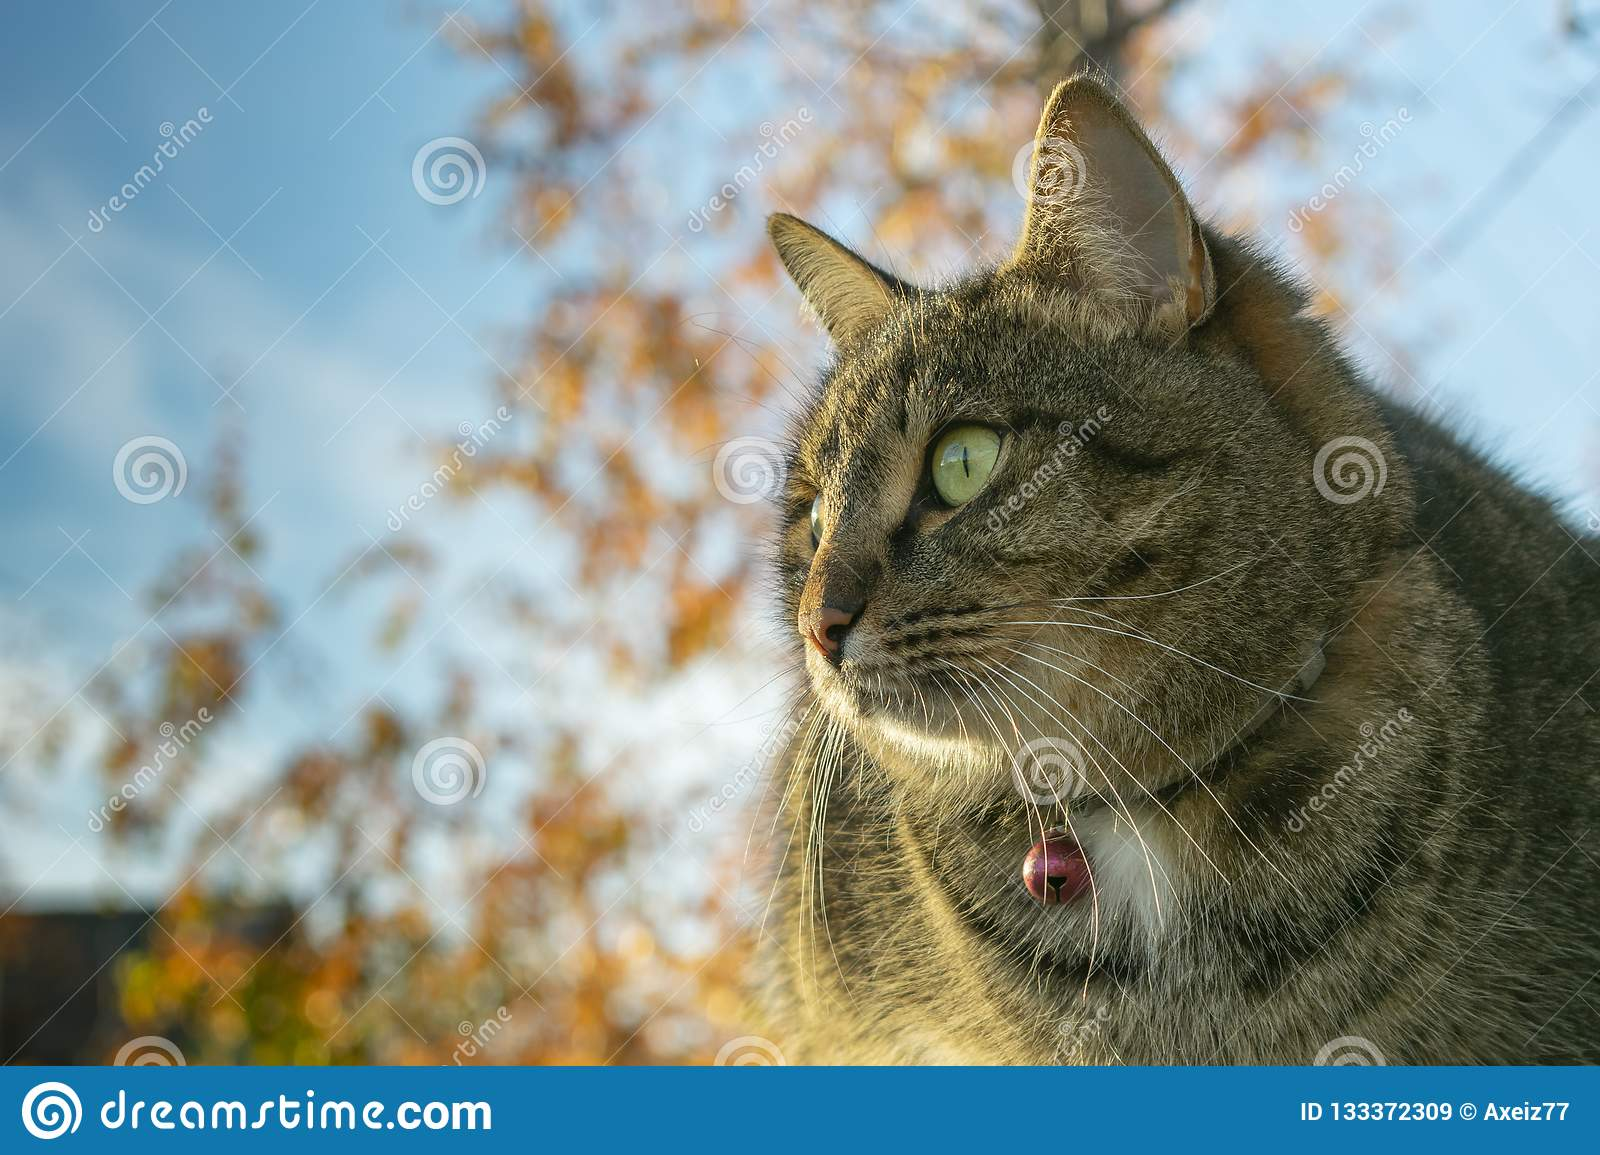 Cat sitting on wooden boards in the autumn against the sky